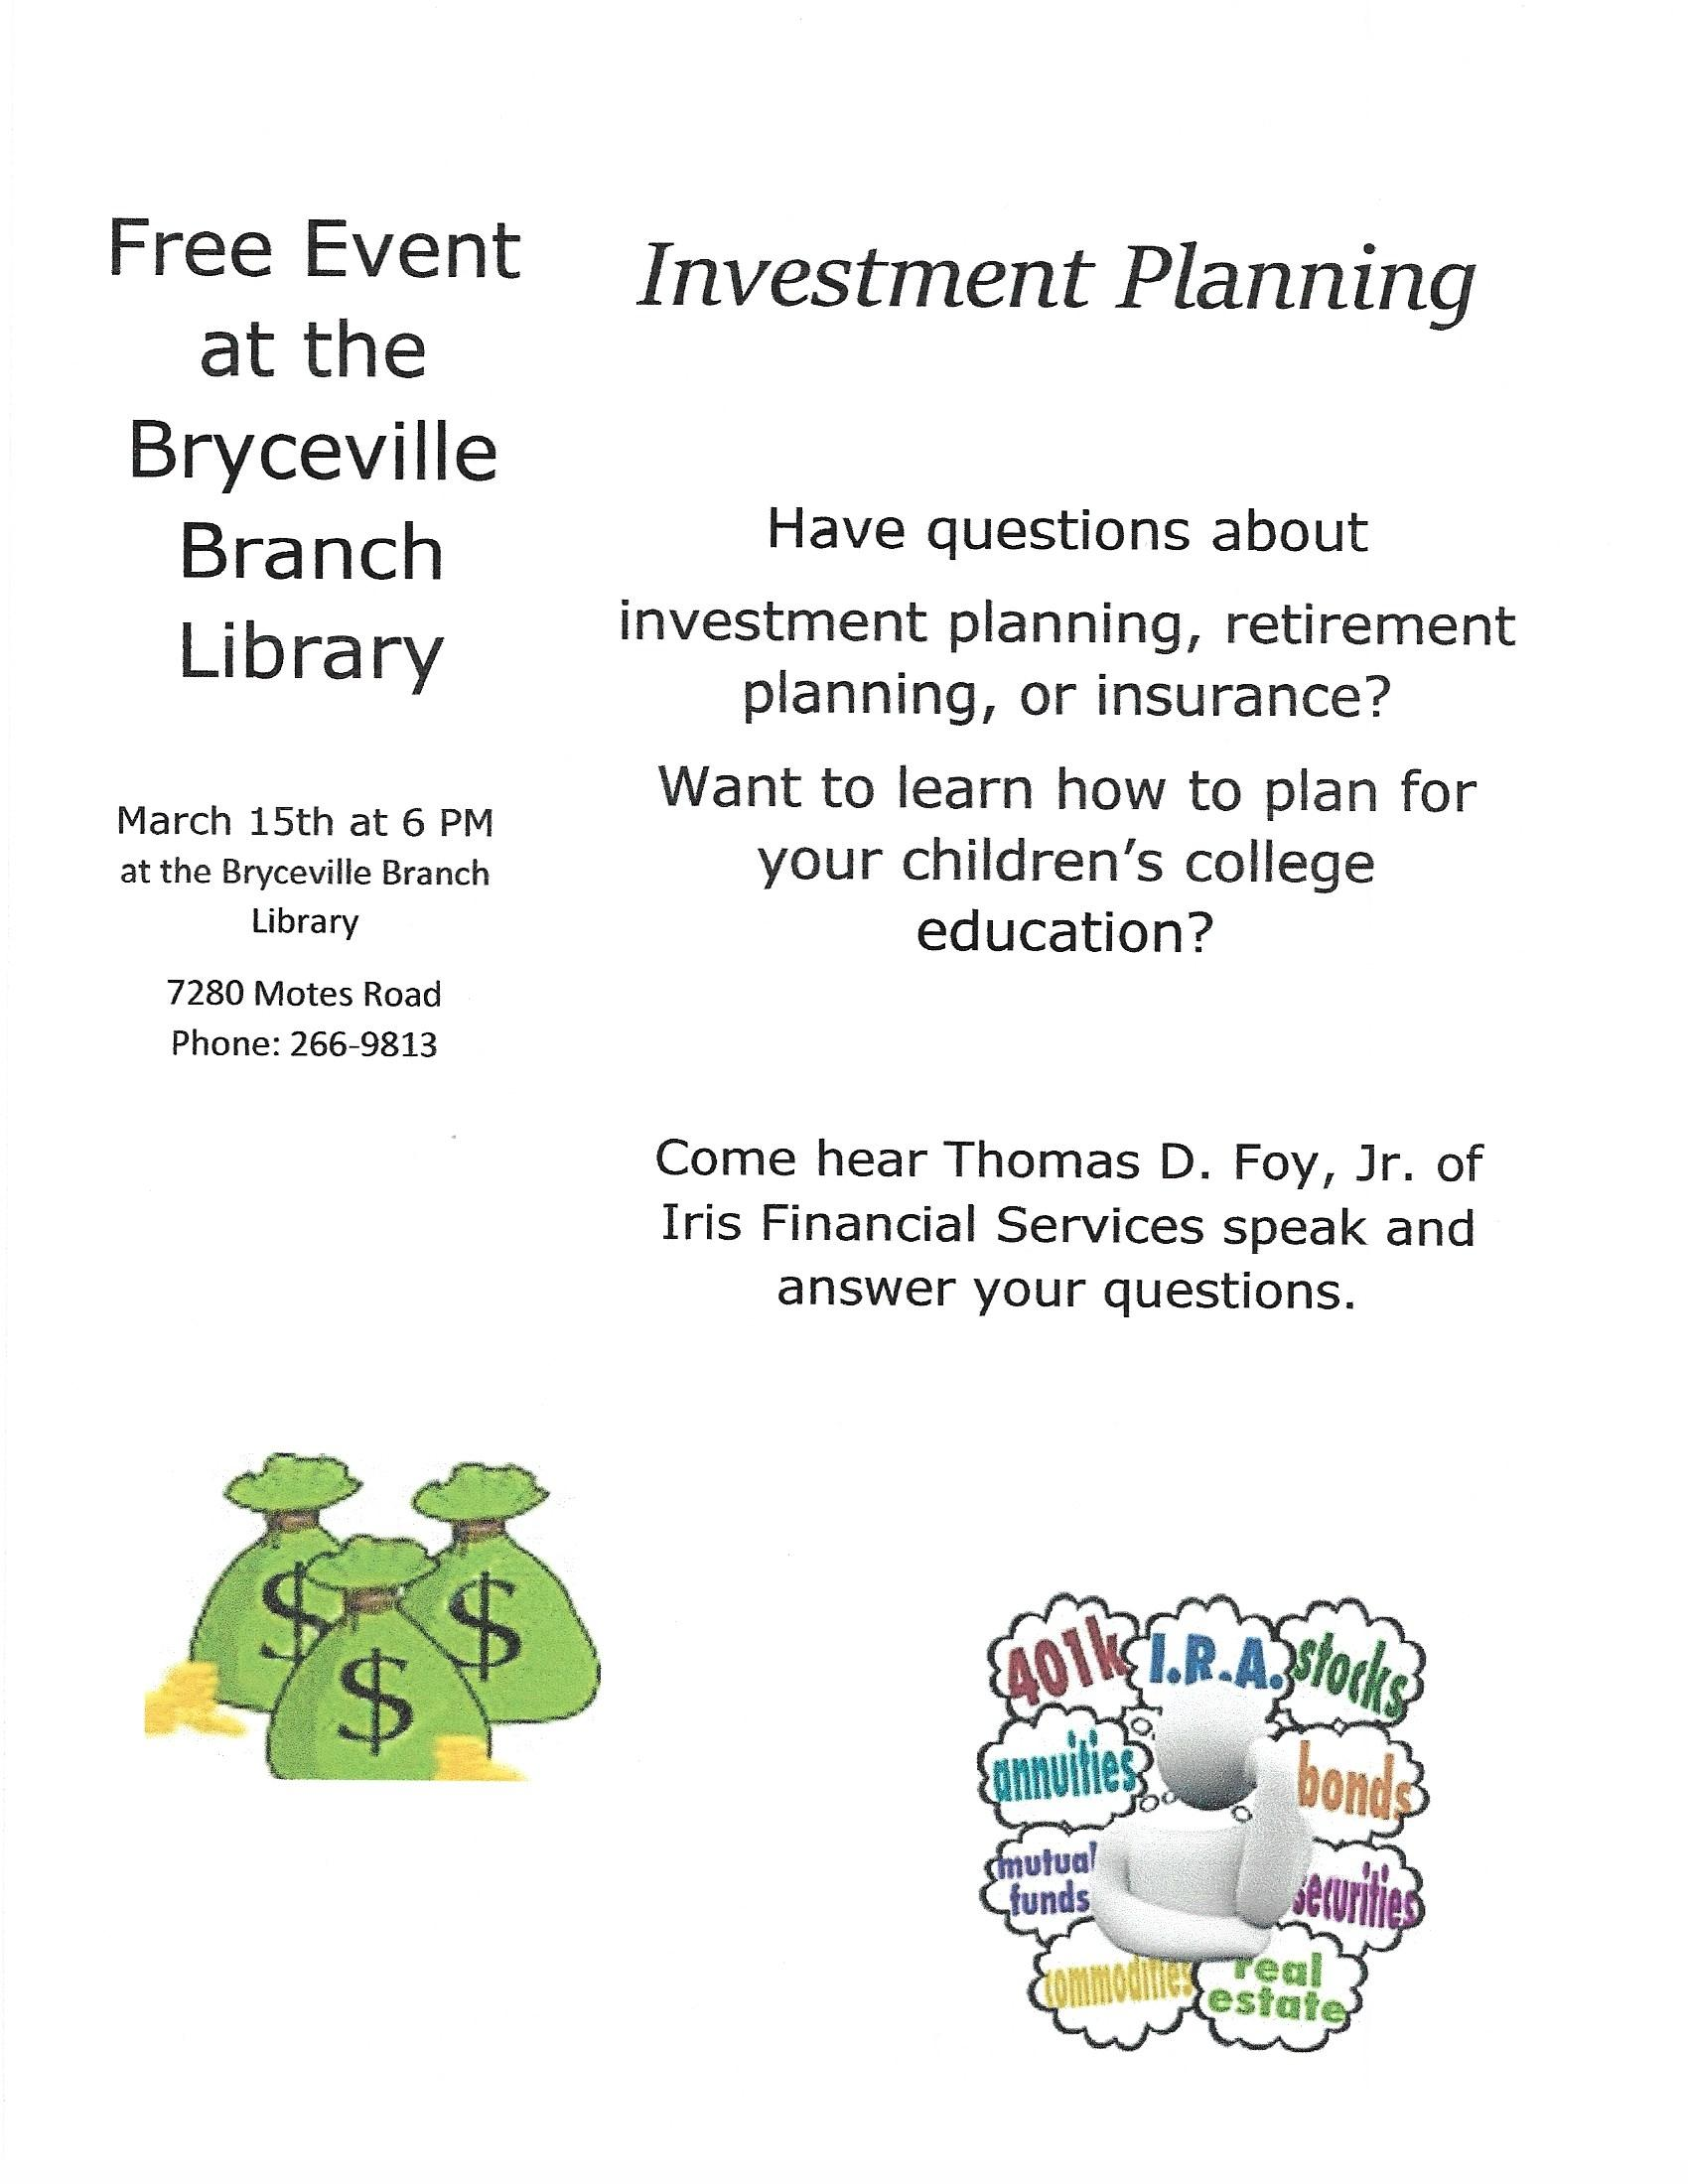 Investment Planning on March 15